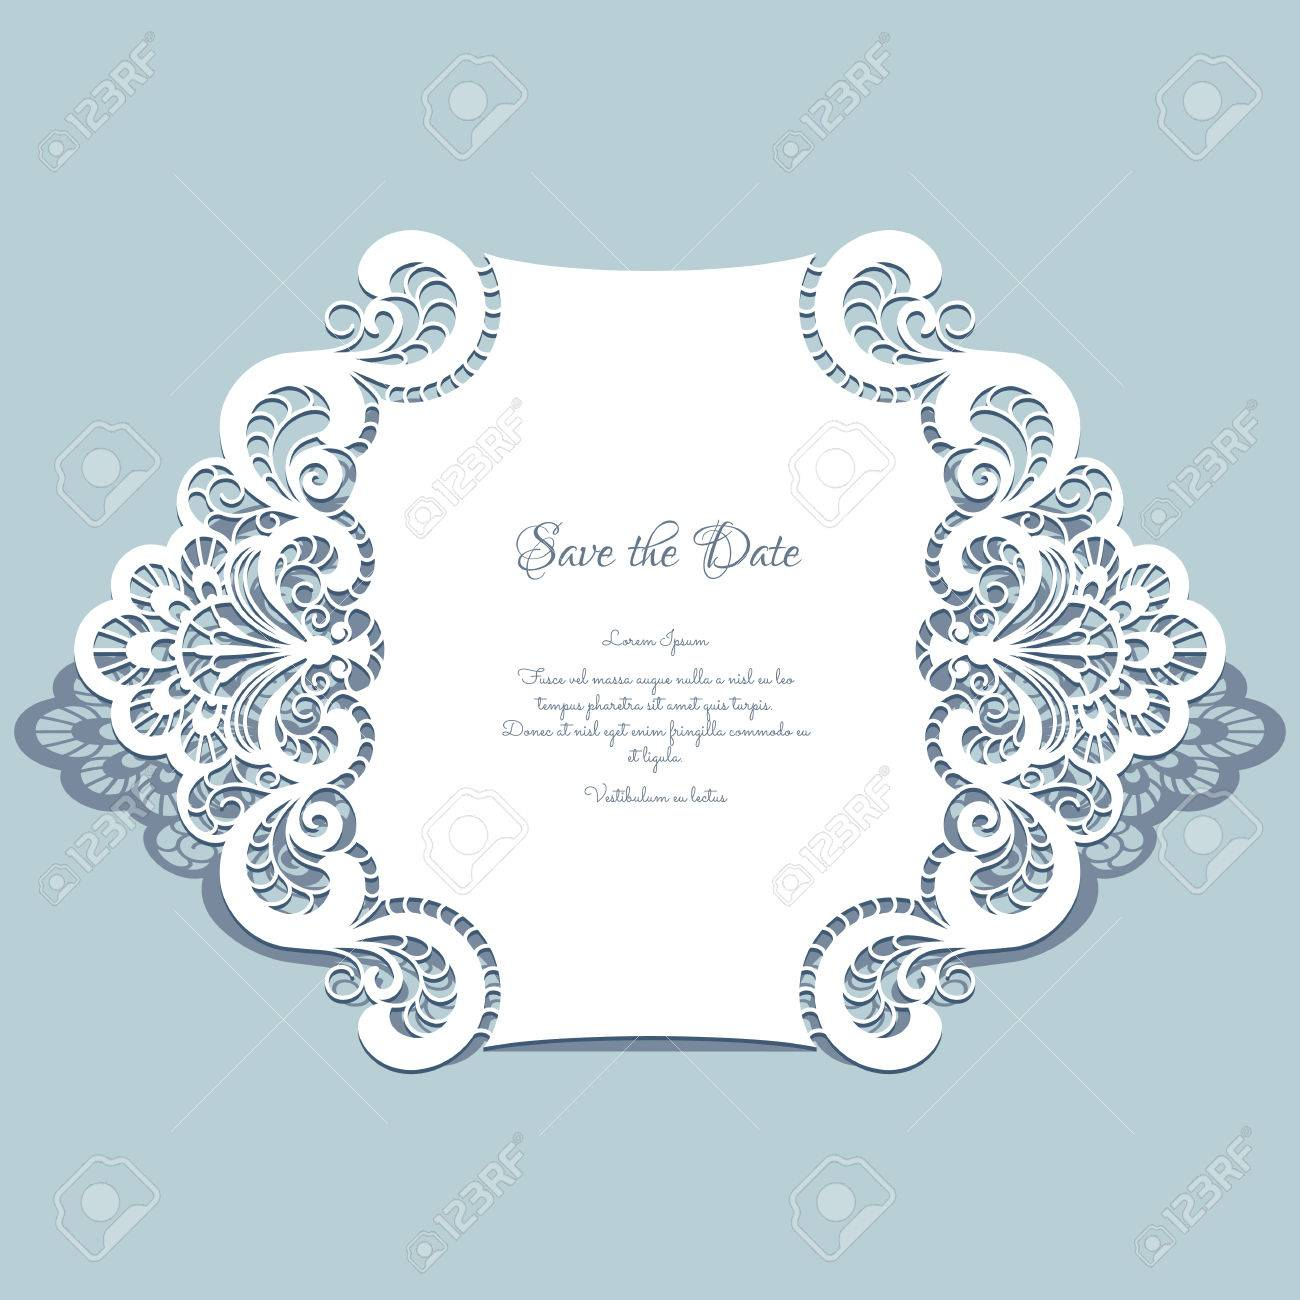 Cutout paper lace frame, greeting card, save the date or wedding invitation template - 43136322